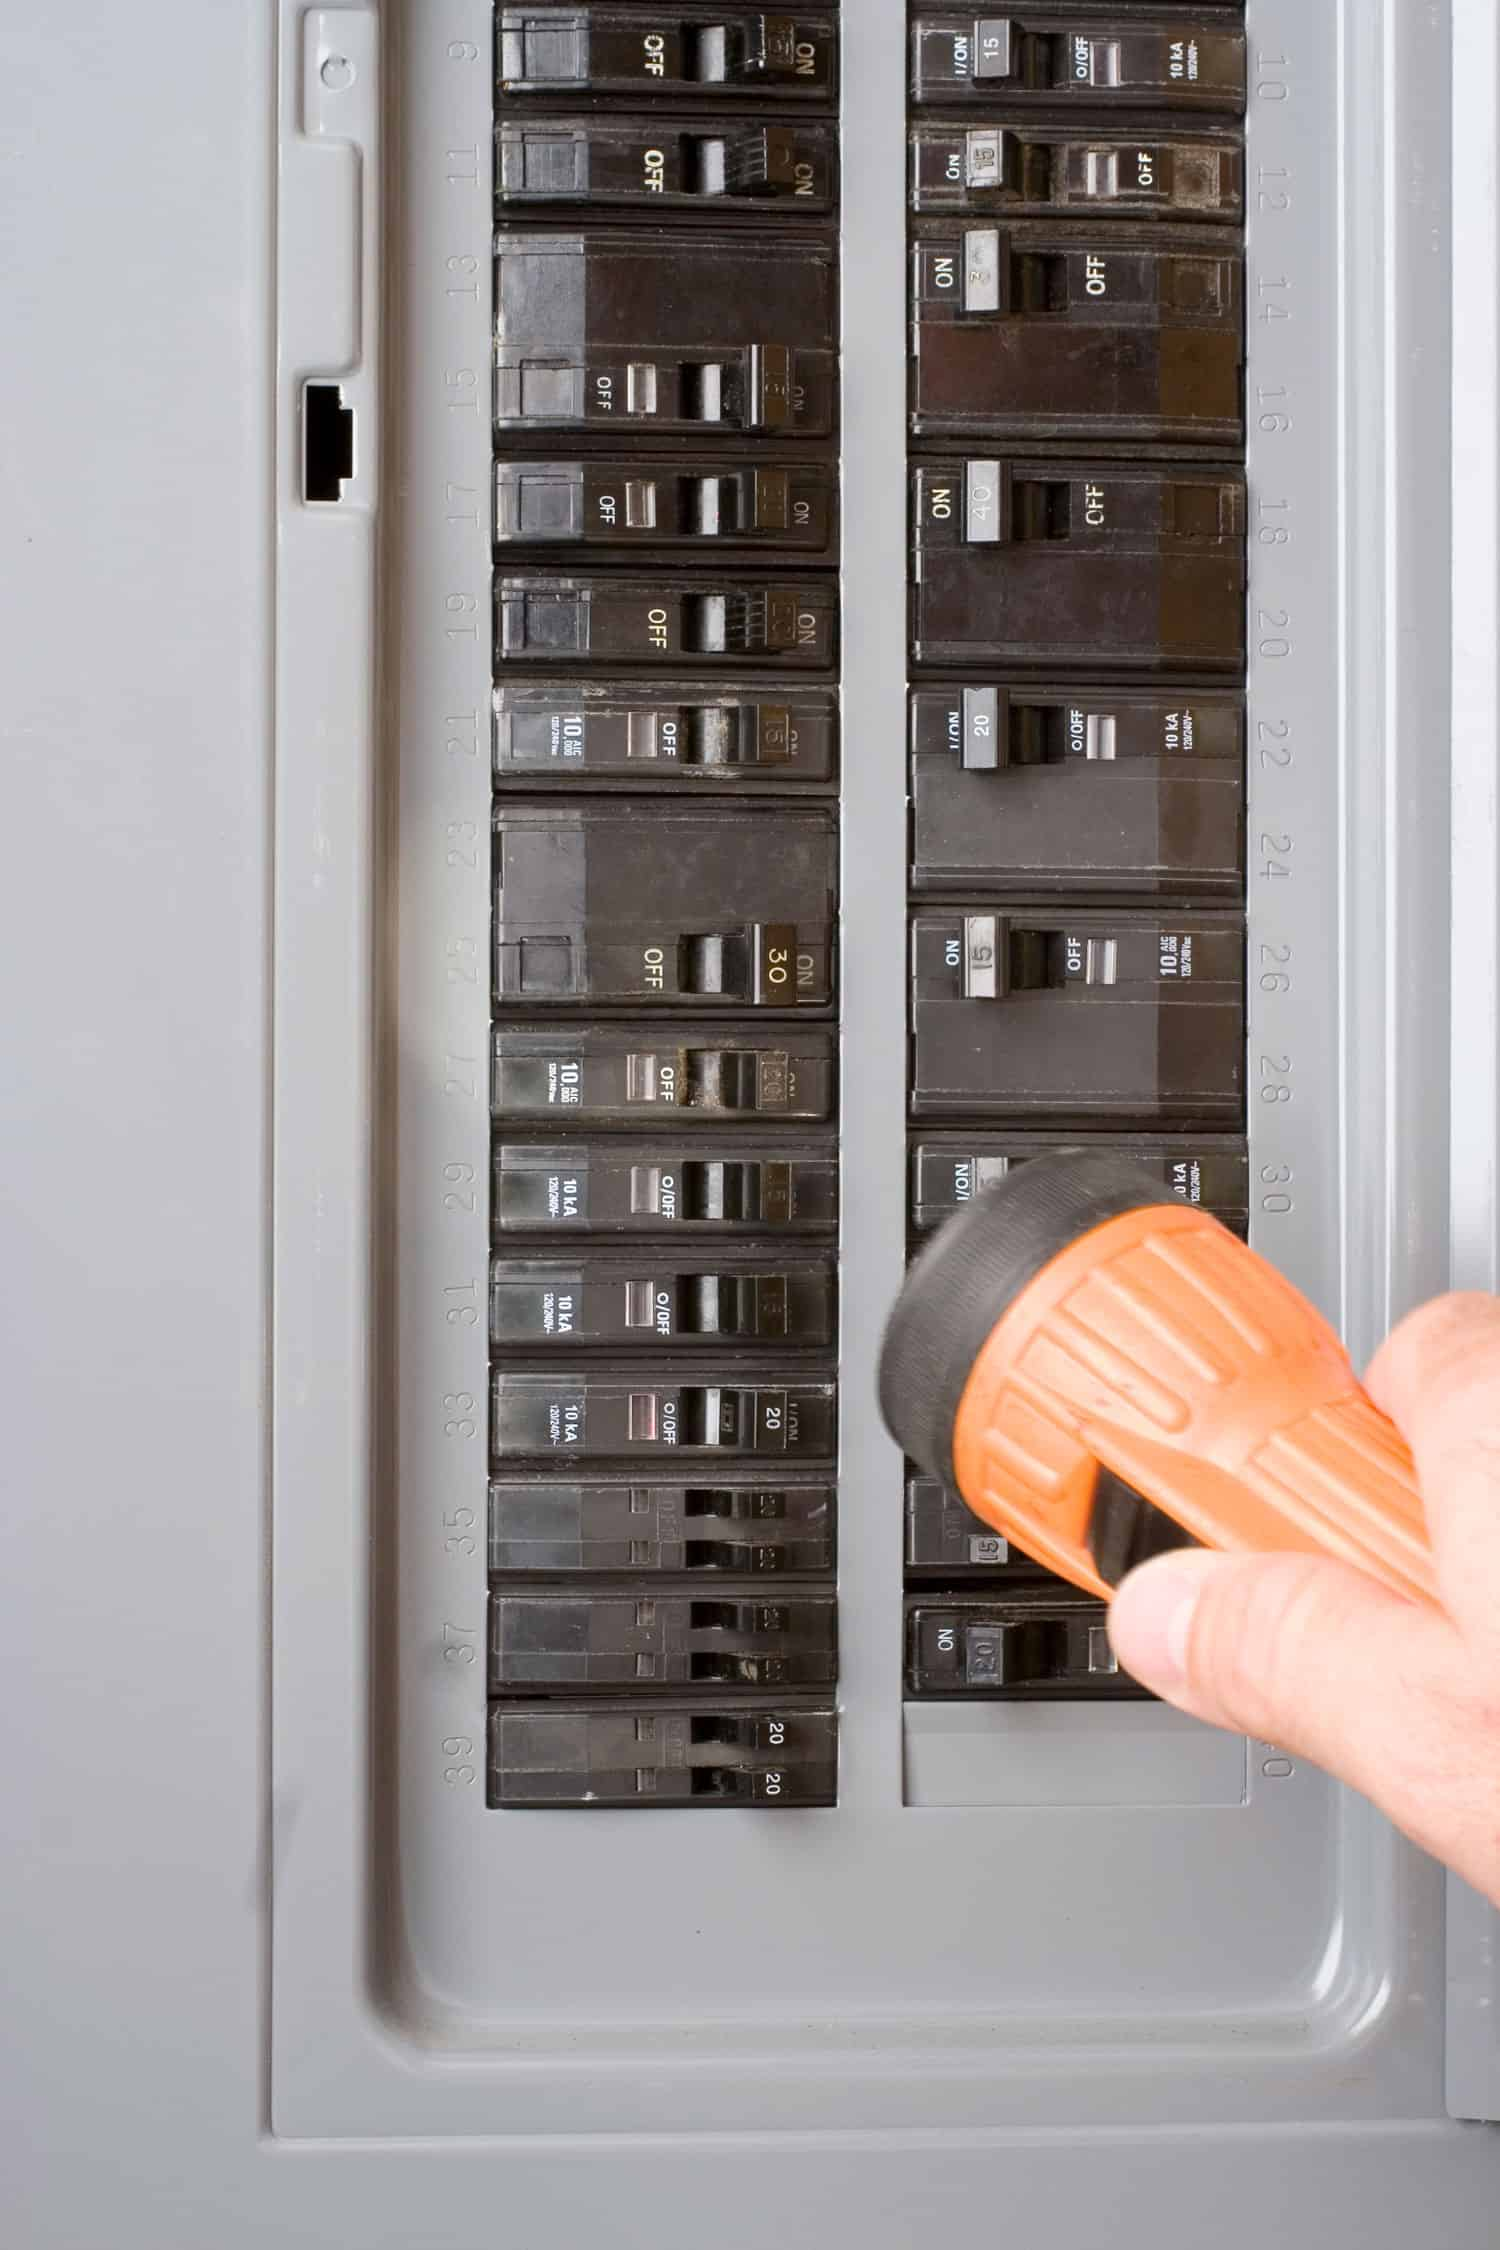 Home electricity power outage. Homeowner uses flashlight to investigate circuit breaker box